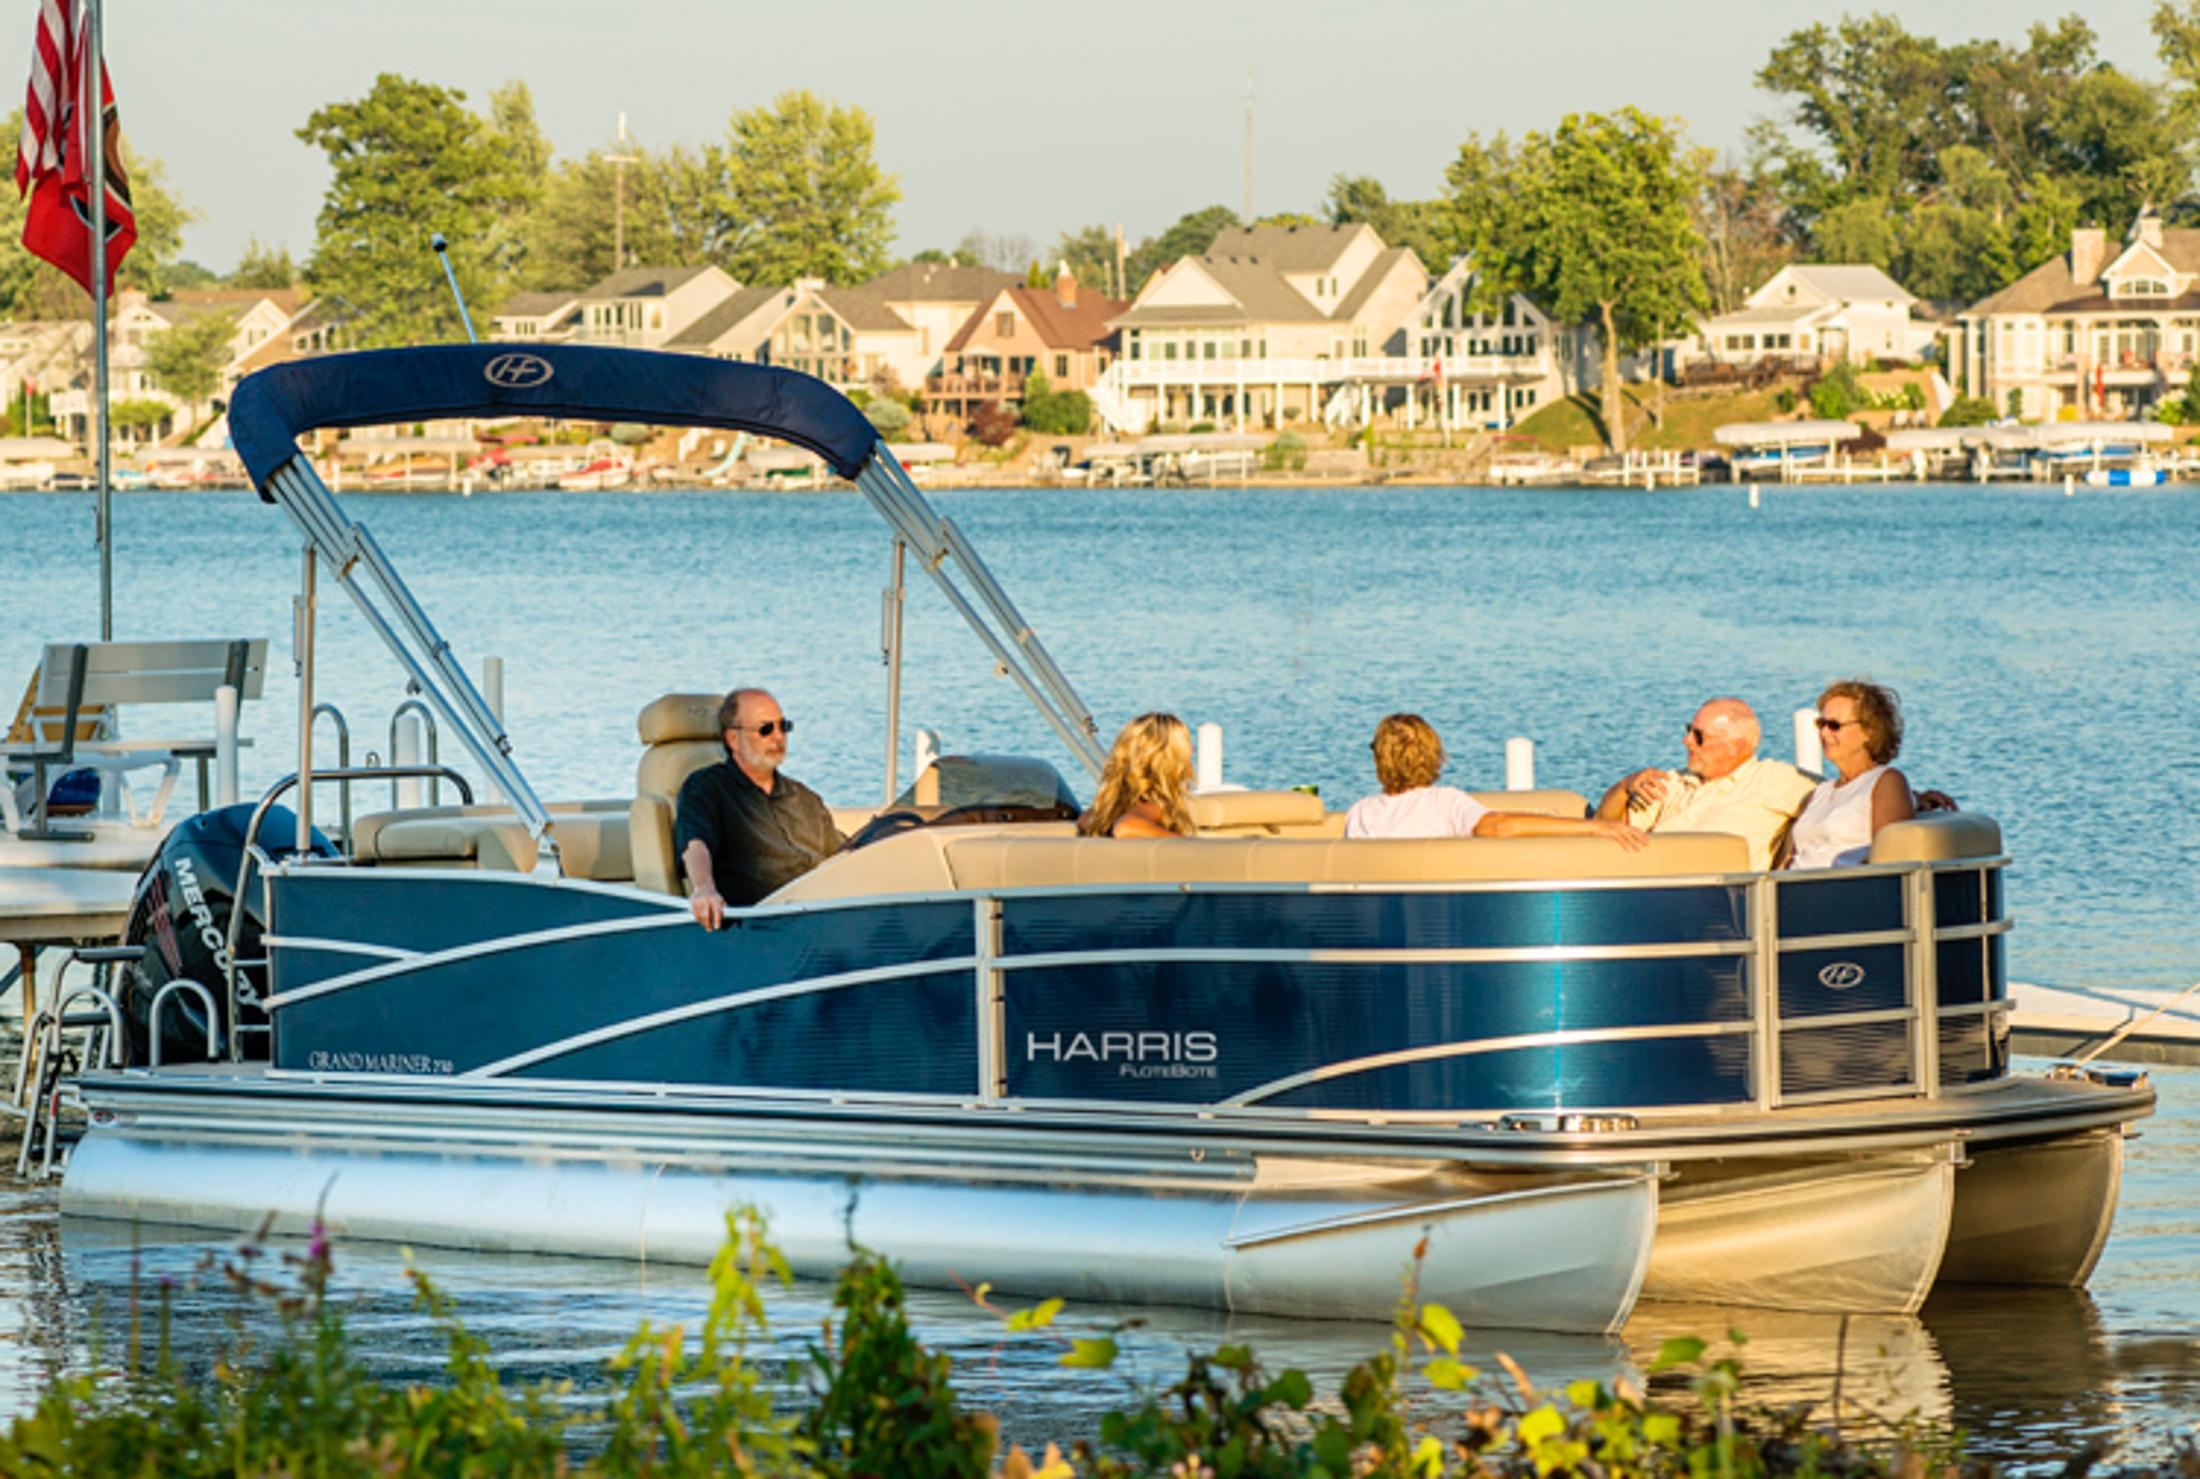 2013 Harris Flotebote Grand Mariner 230 in Manitou Beach, Michigan